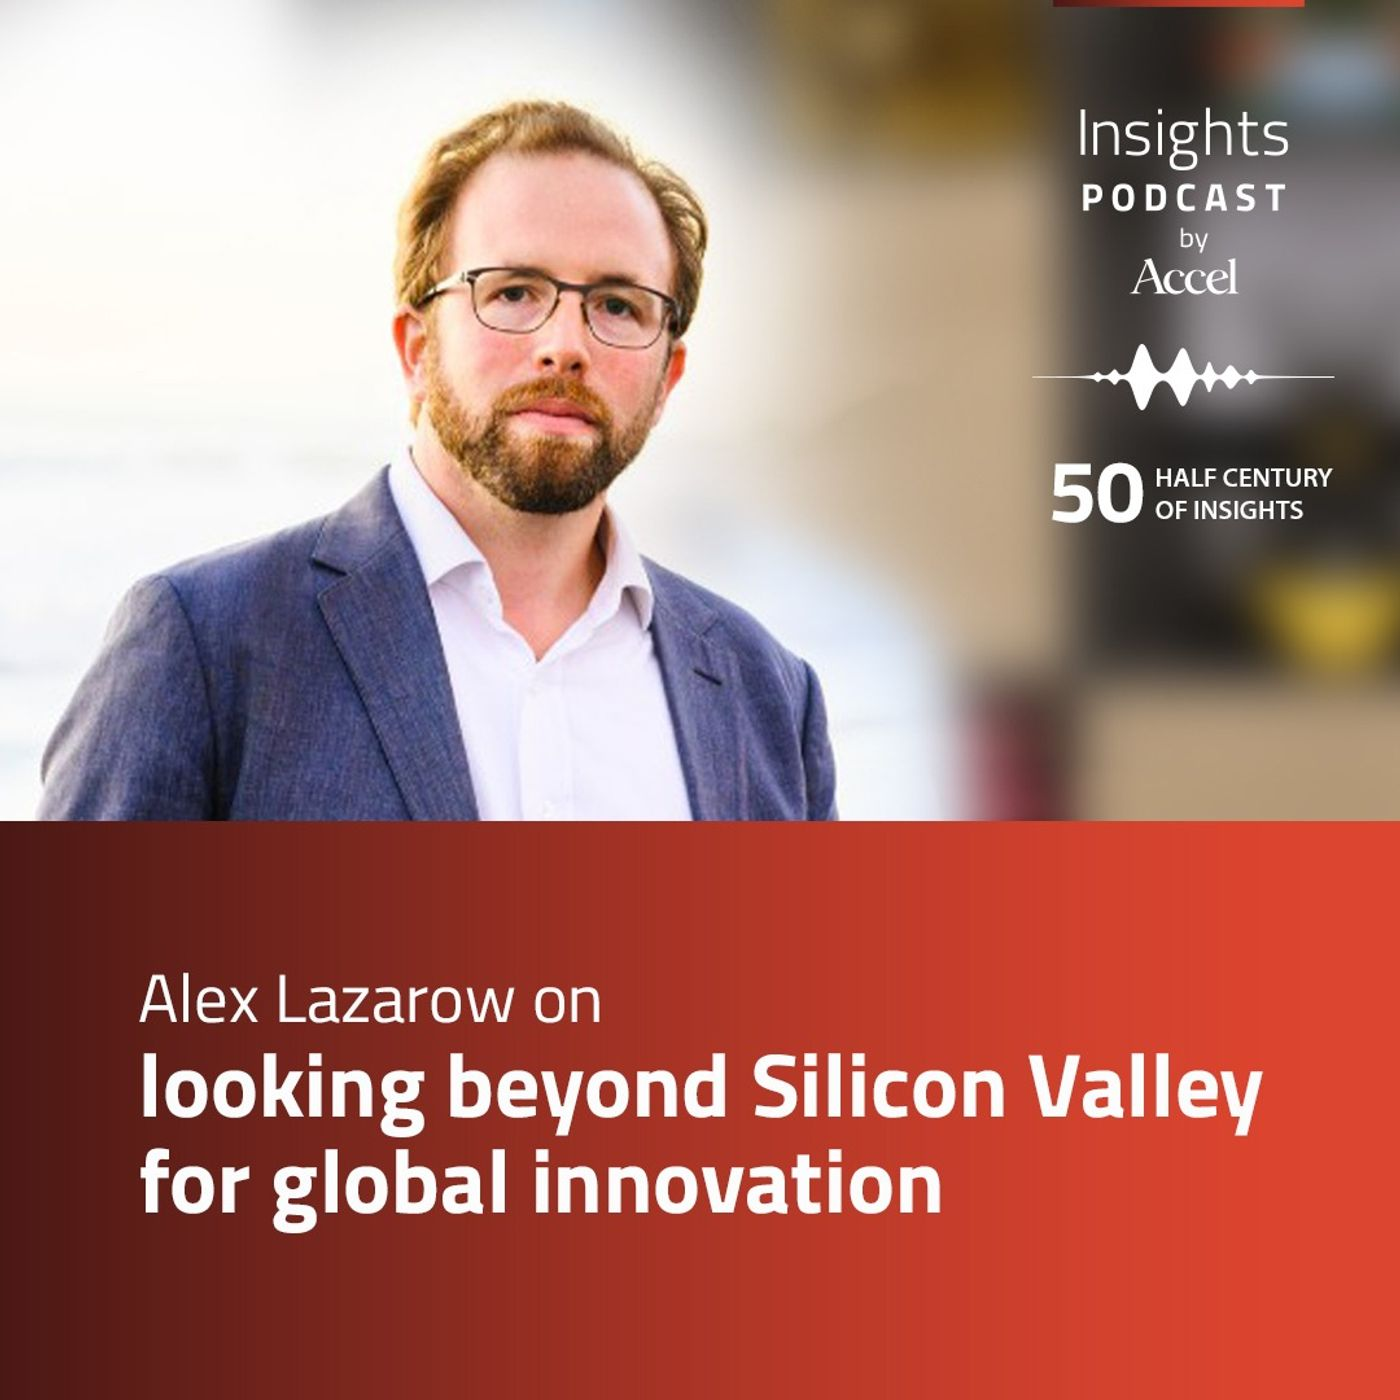 INSIGHTS #51 - Alex Lazarow on looking beyond Silicon Valley for global innovation